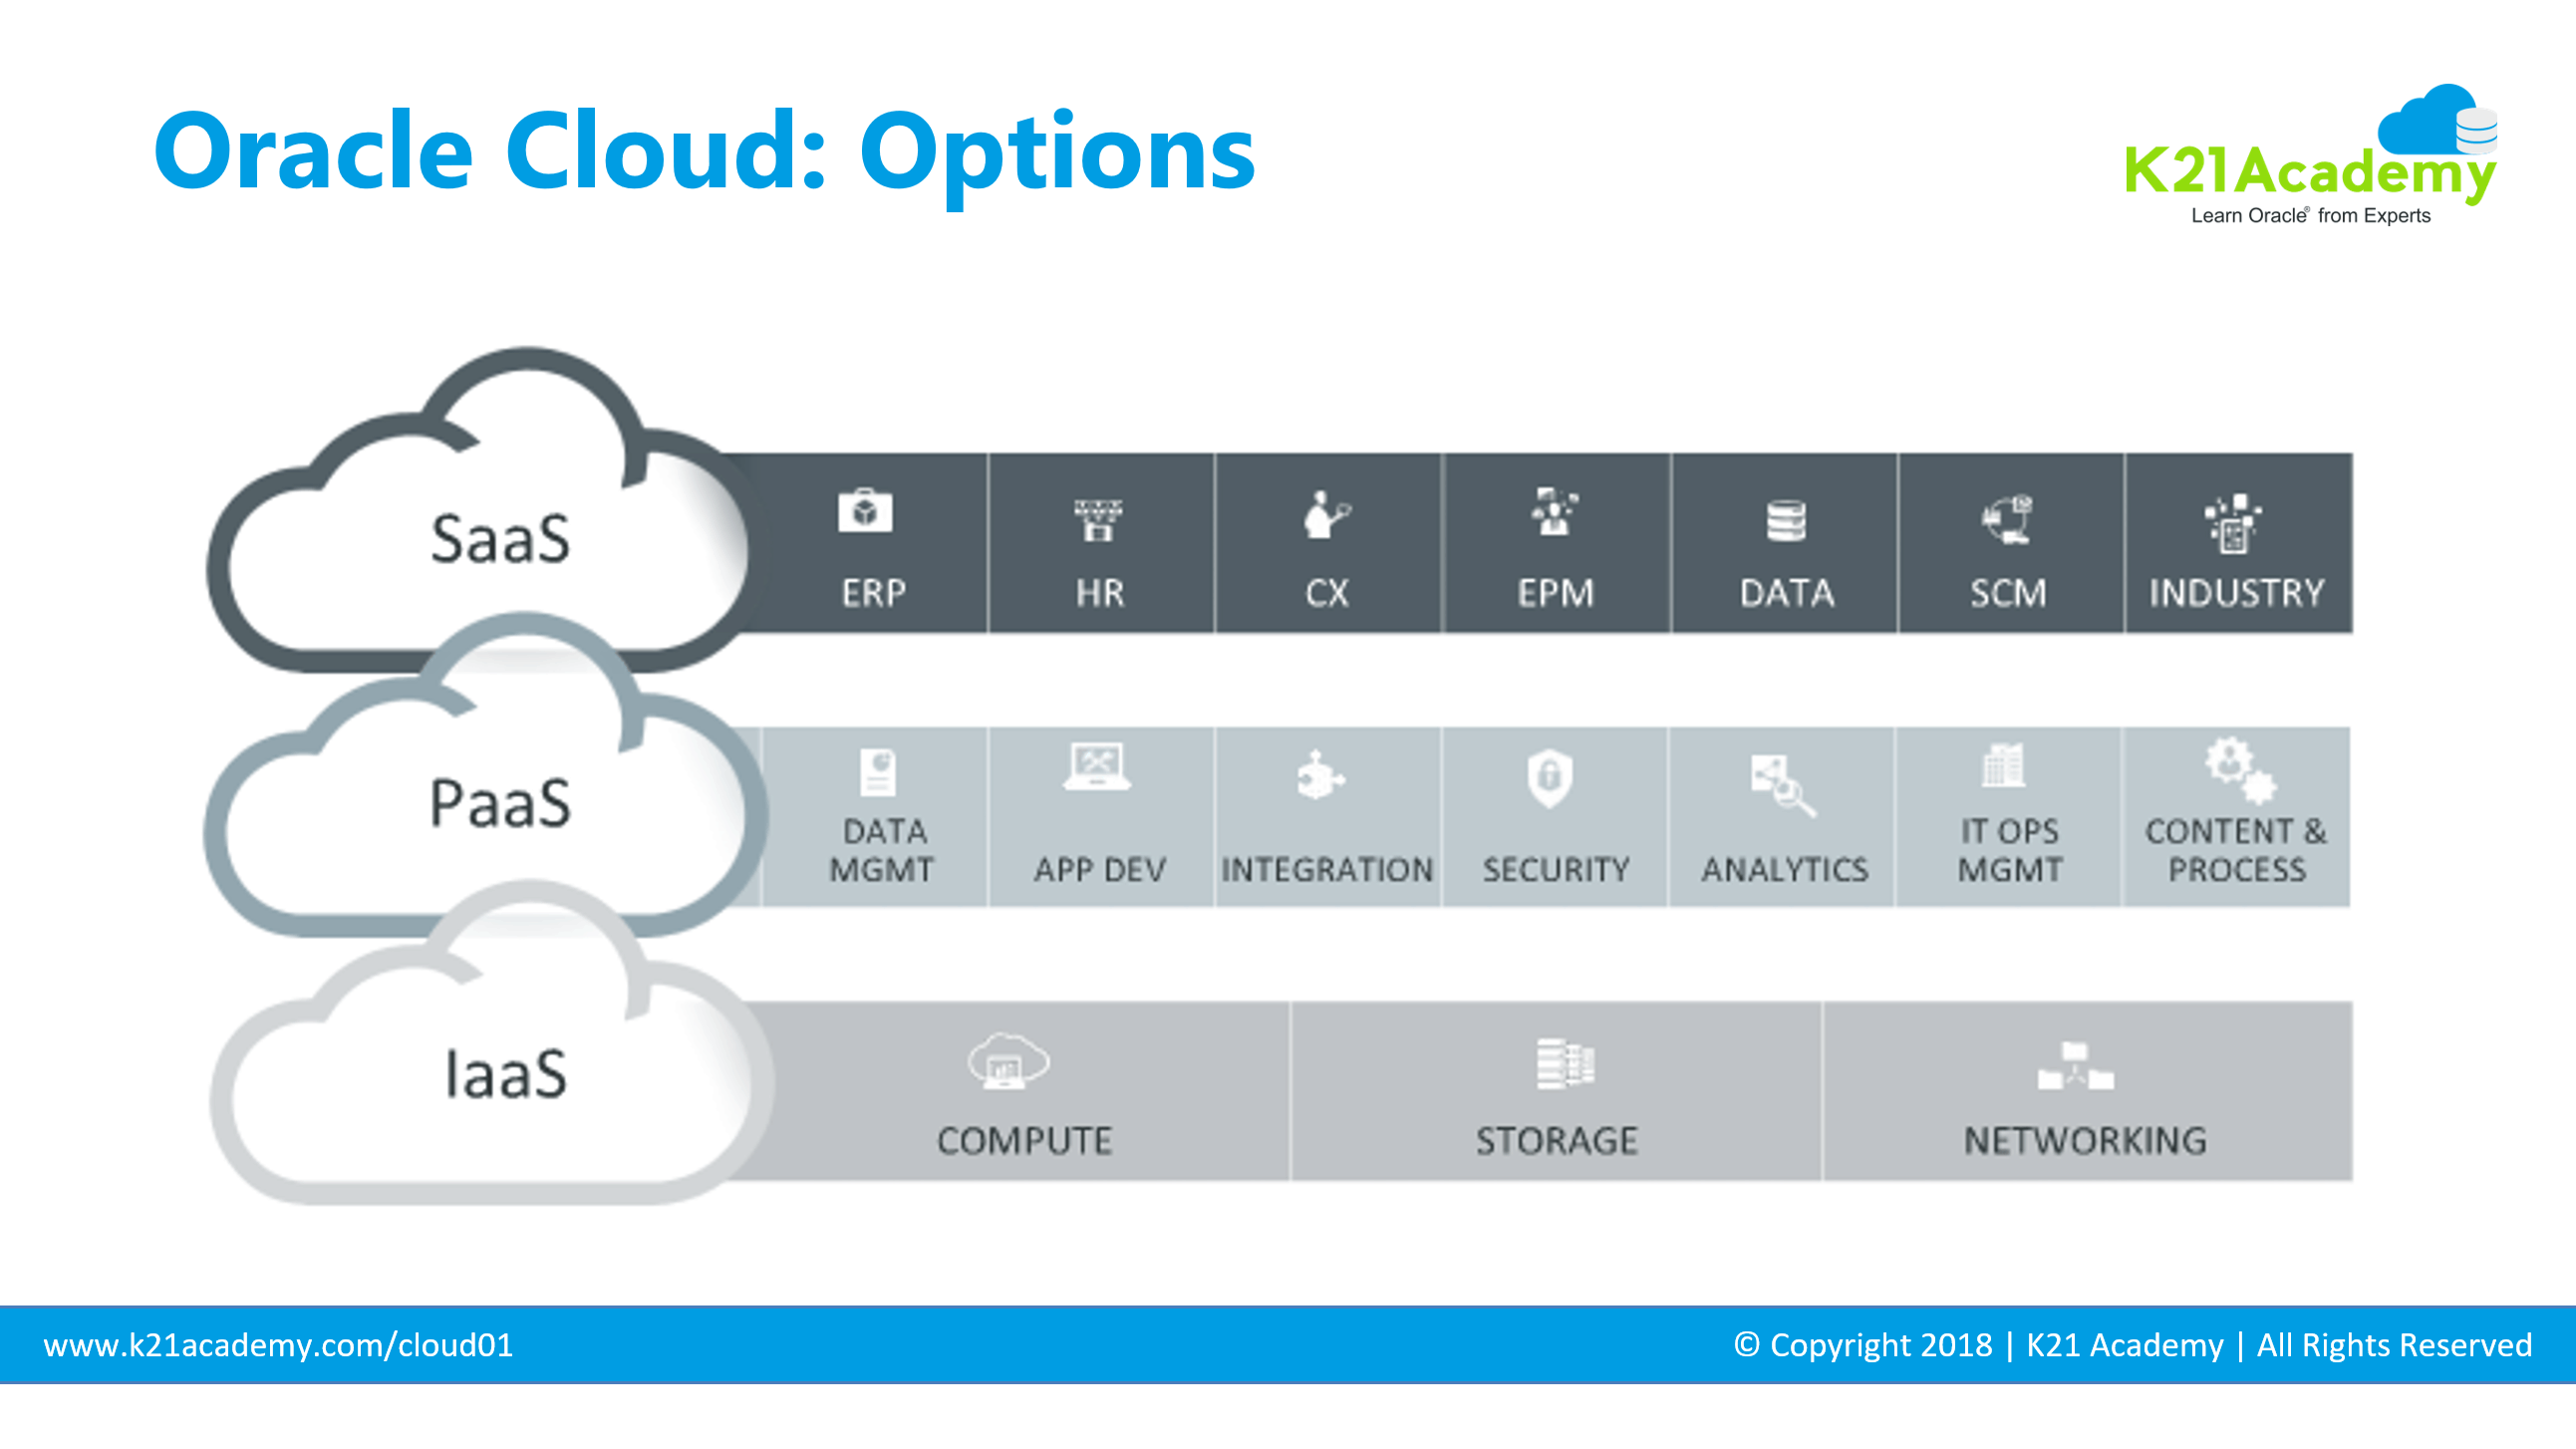 Different Oracle Cloud Options